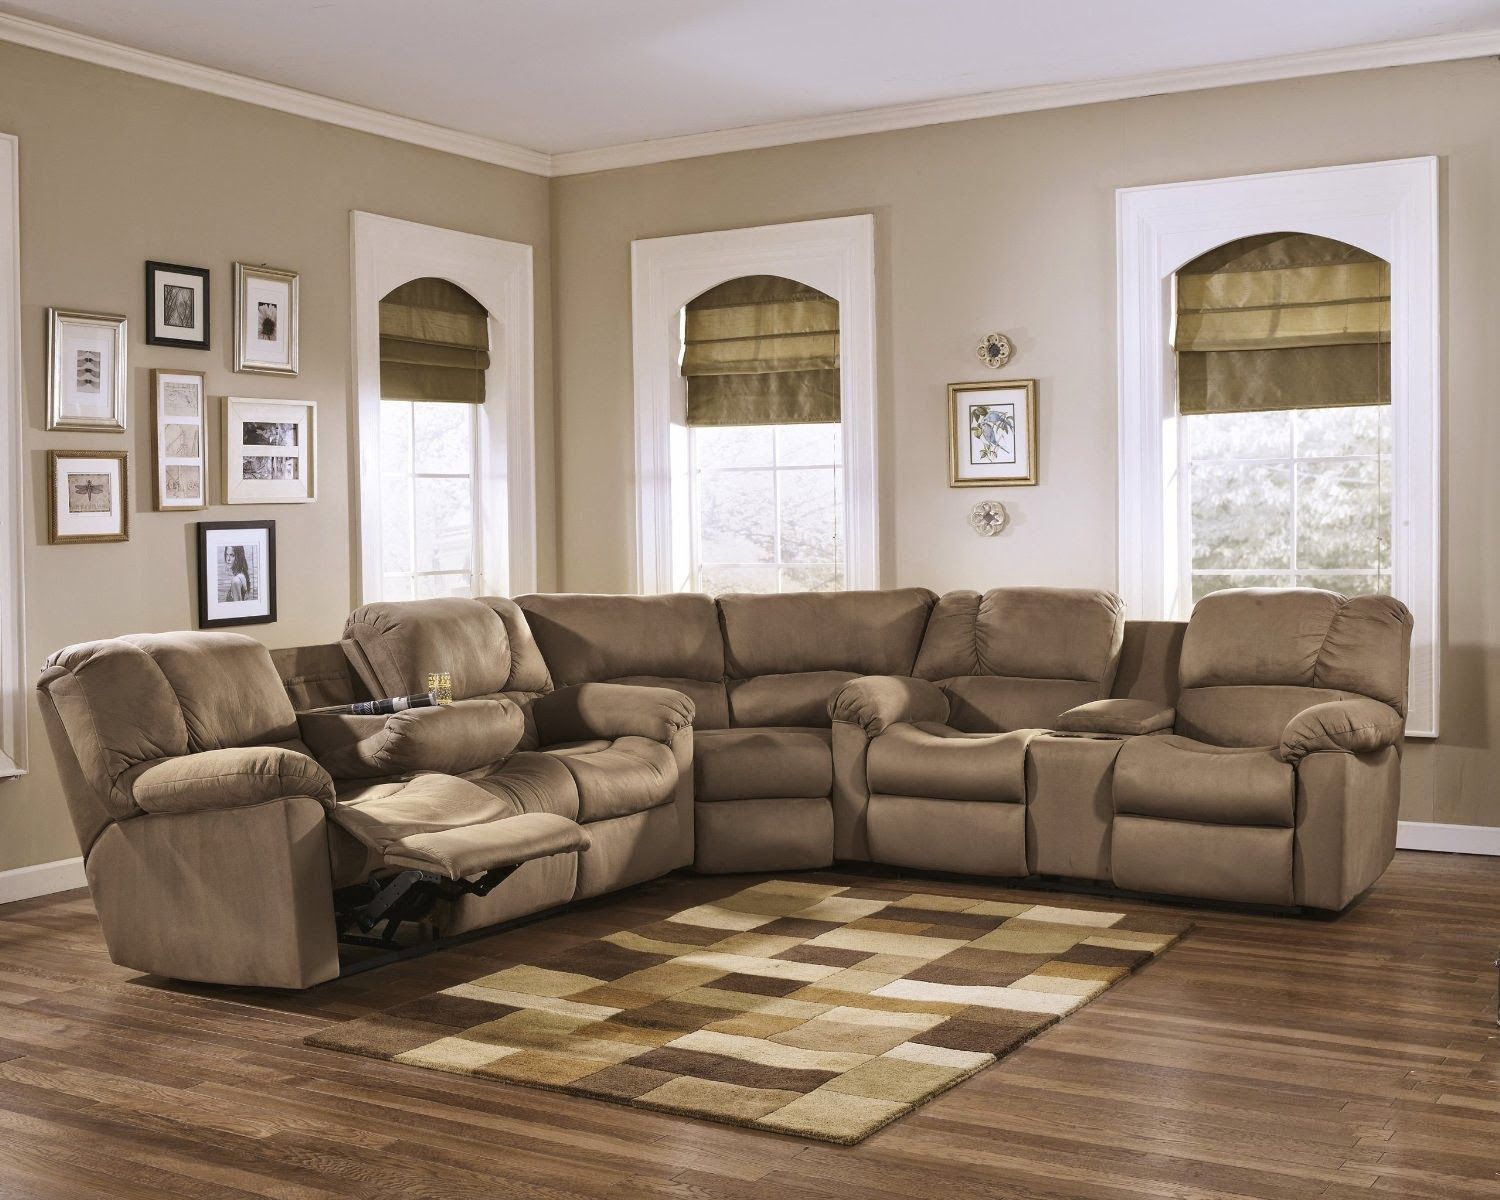 17++ Fabric reclining living room sets ideas in 2021